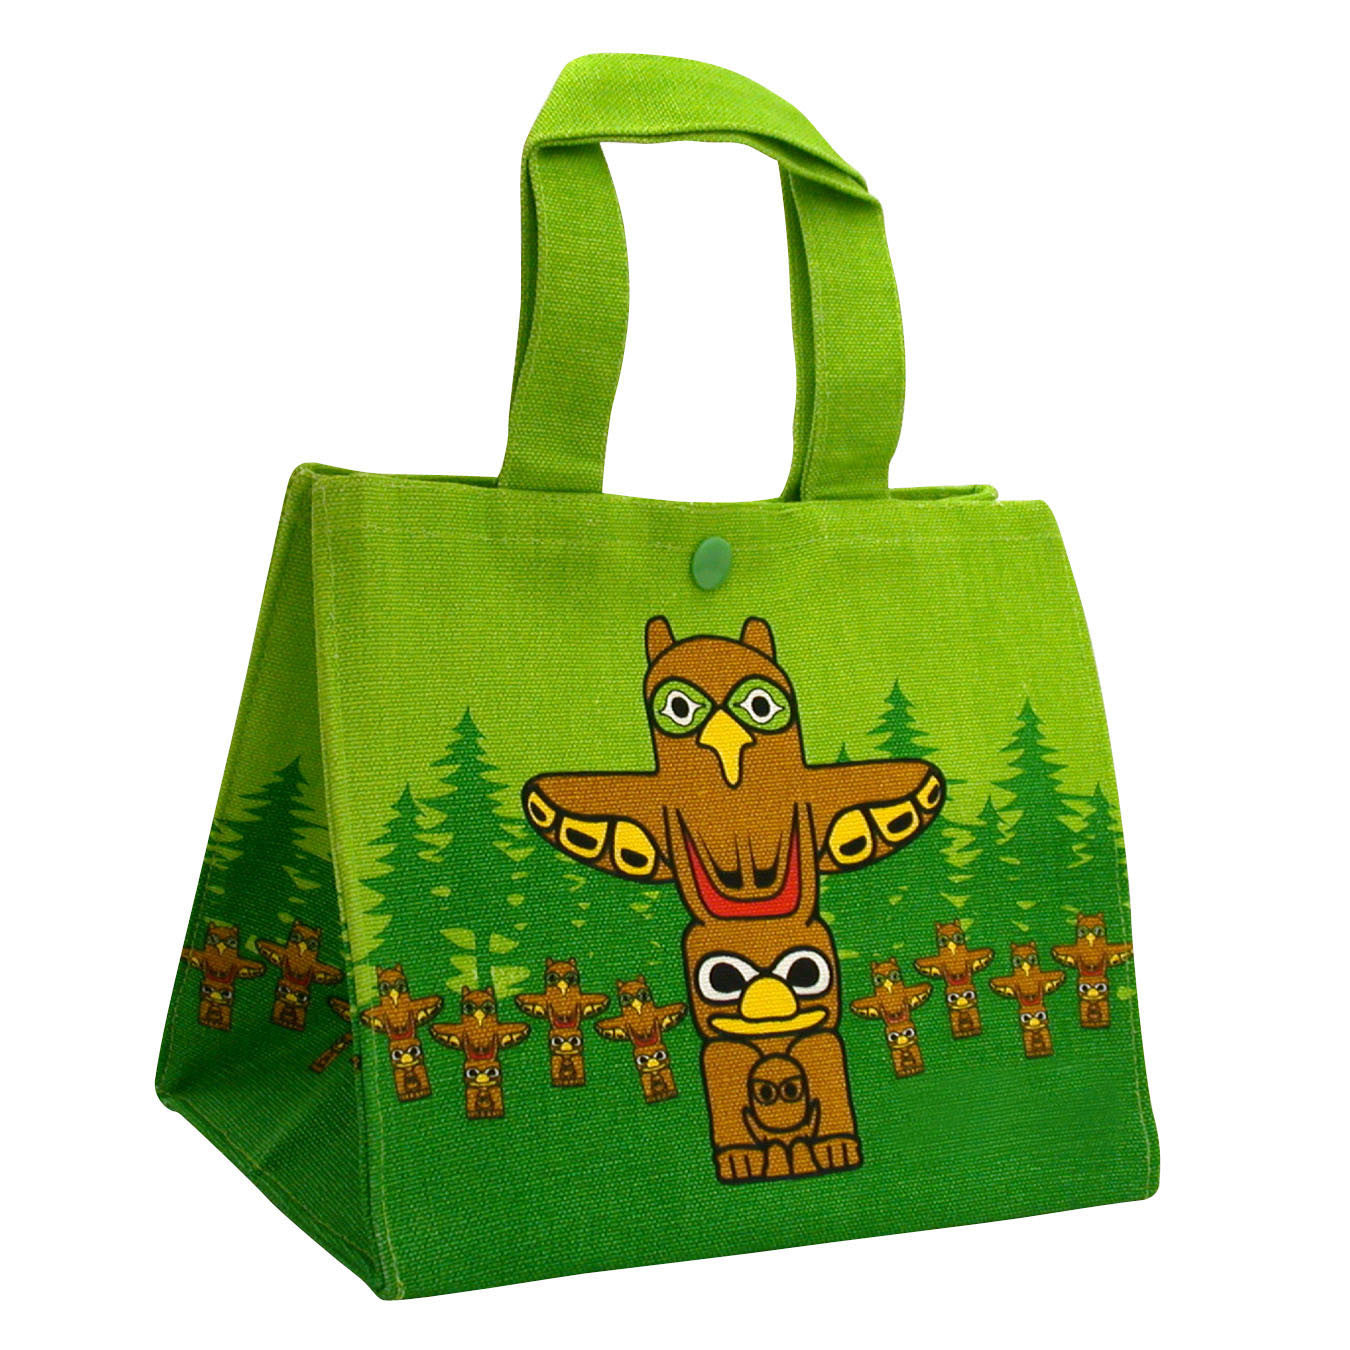 Totem Children's Lunch Bag